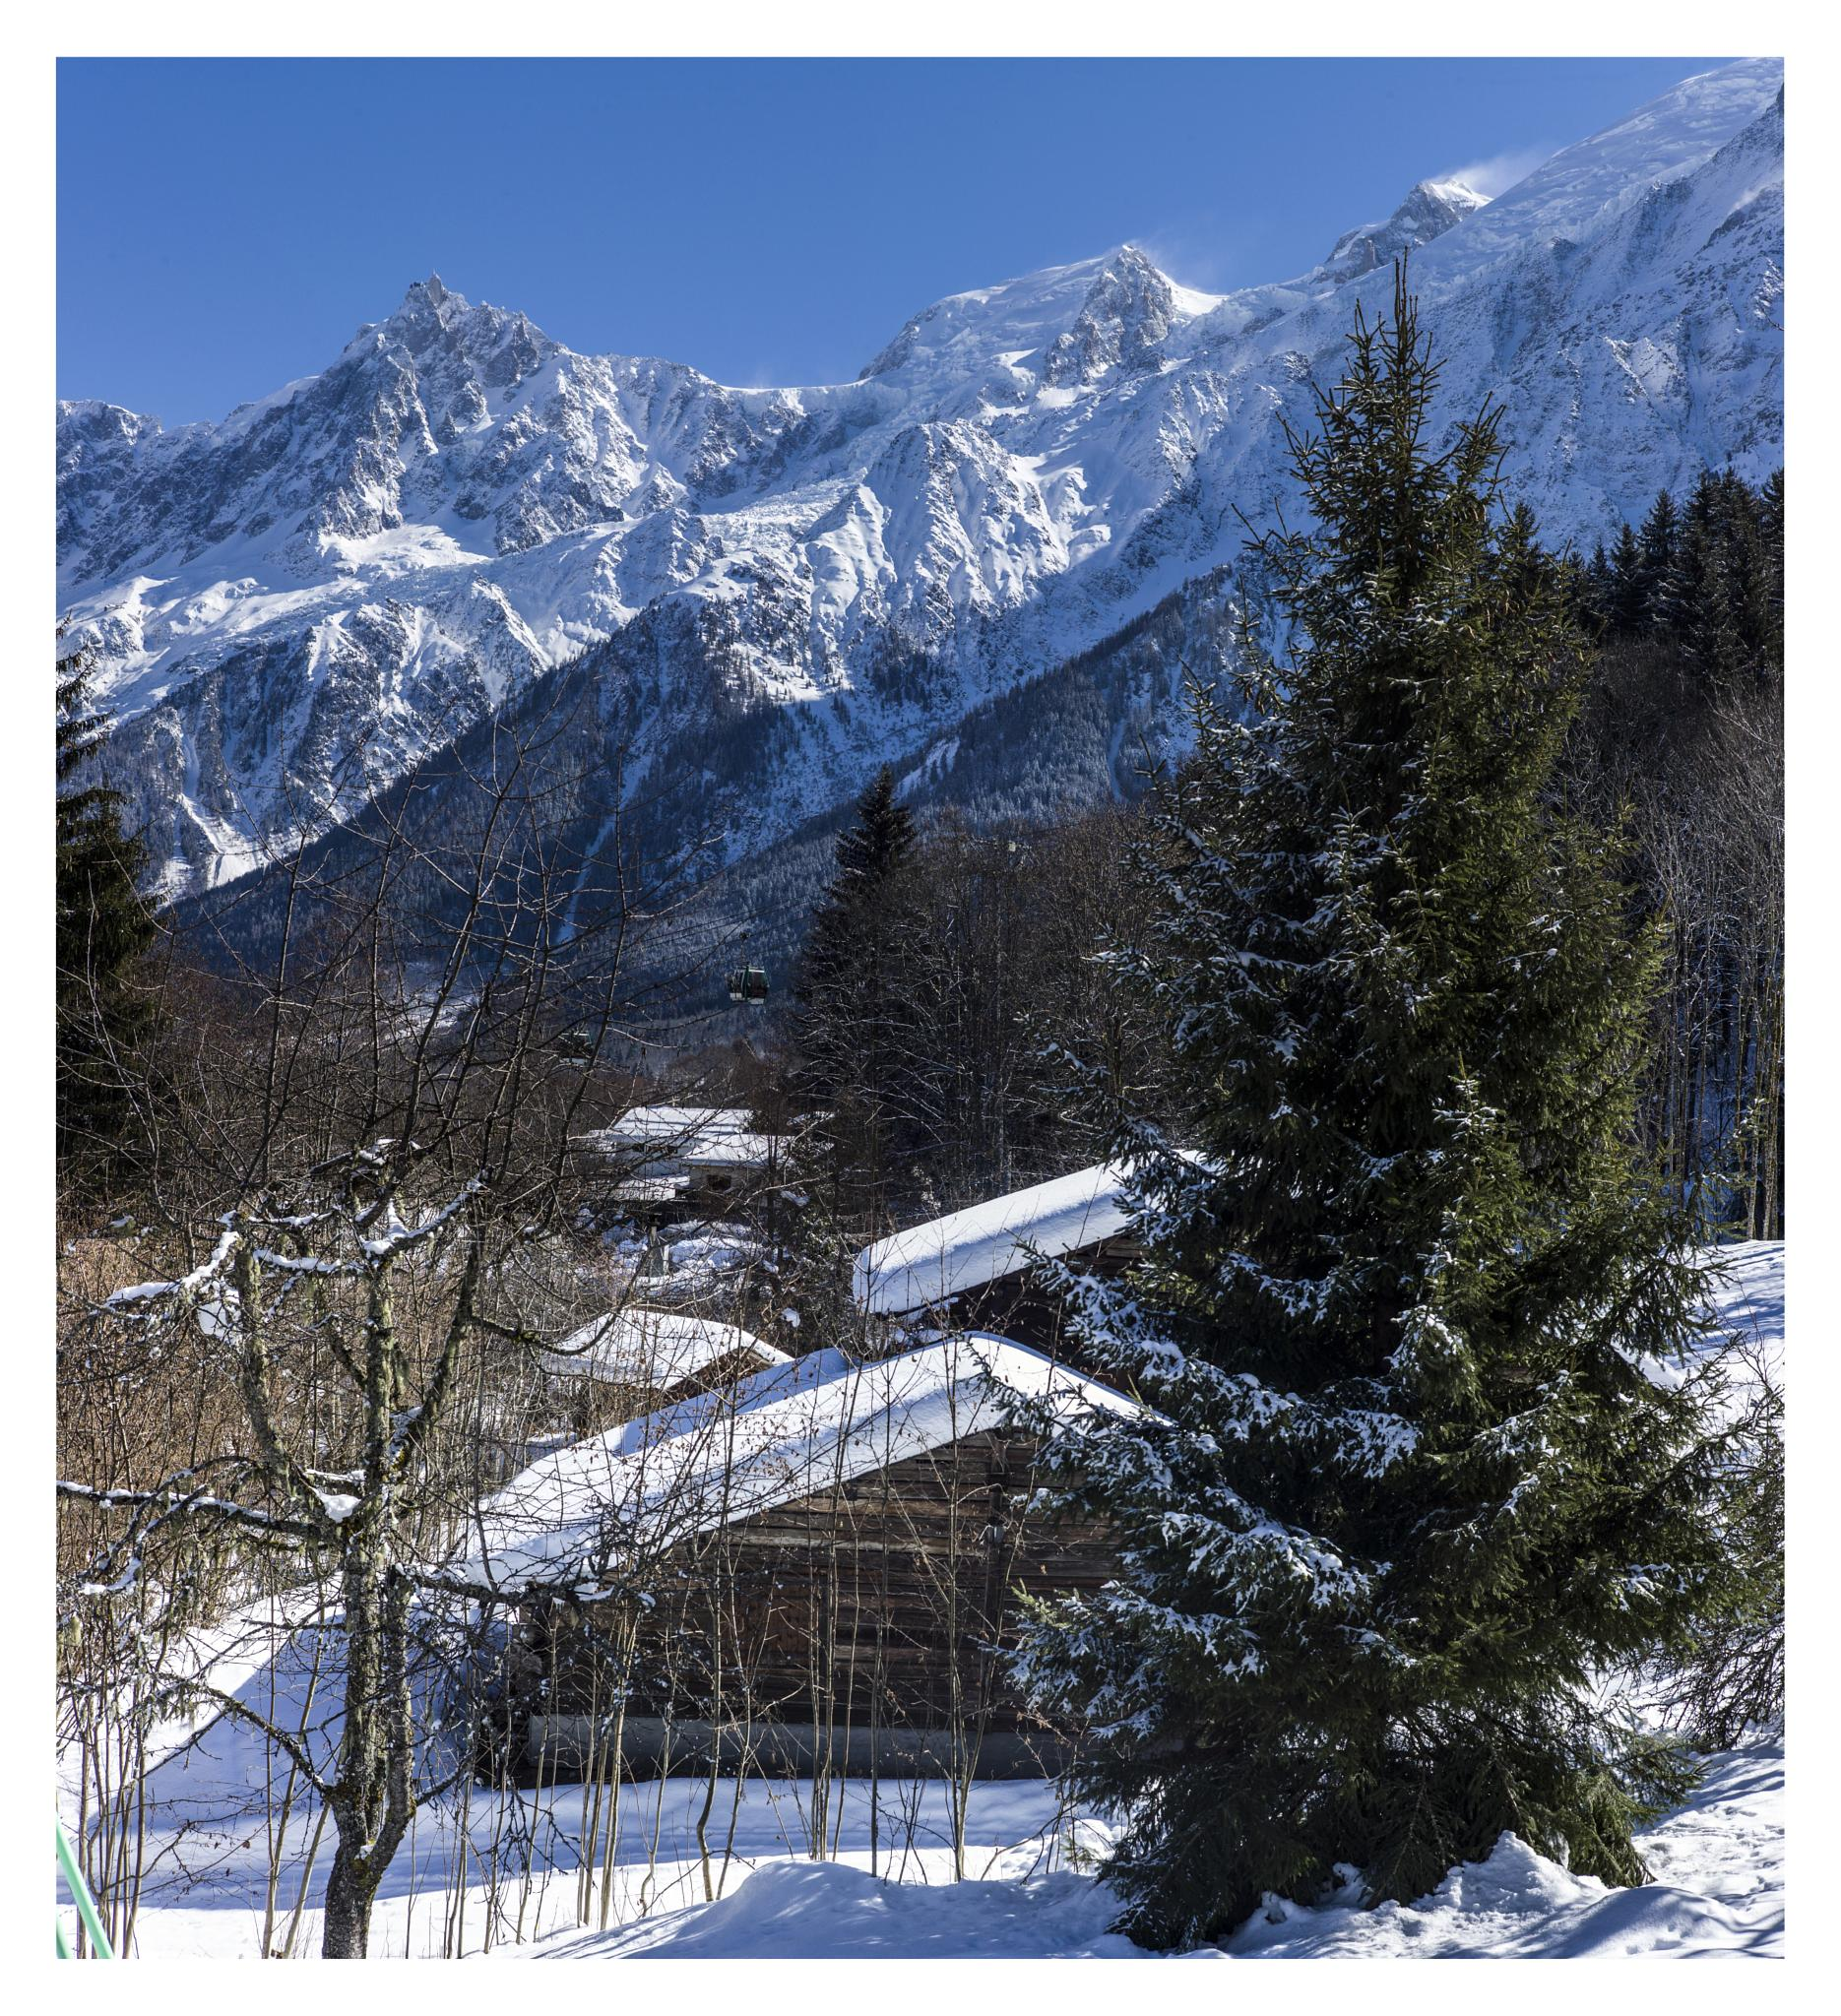 Les Houches, Chamonix by leicajerome